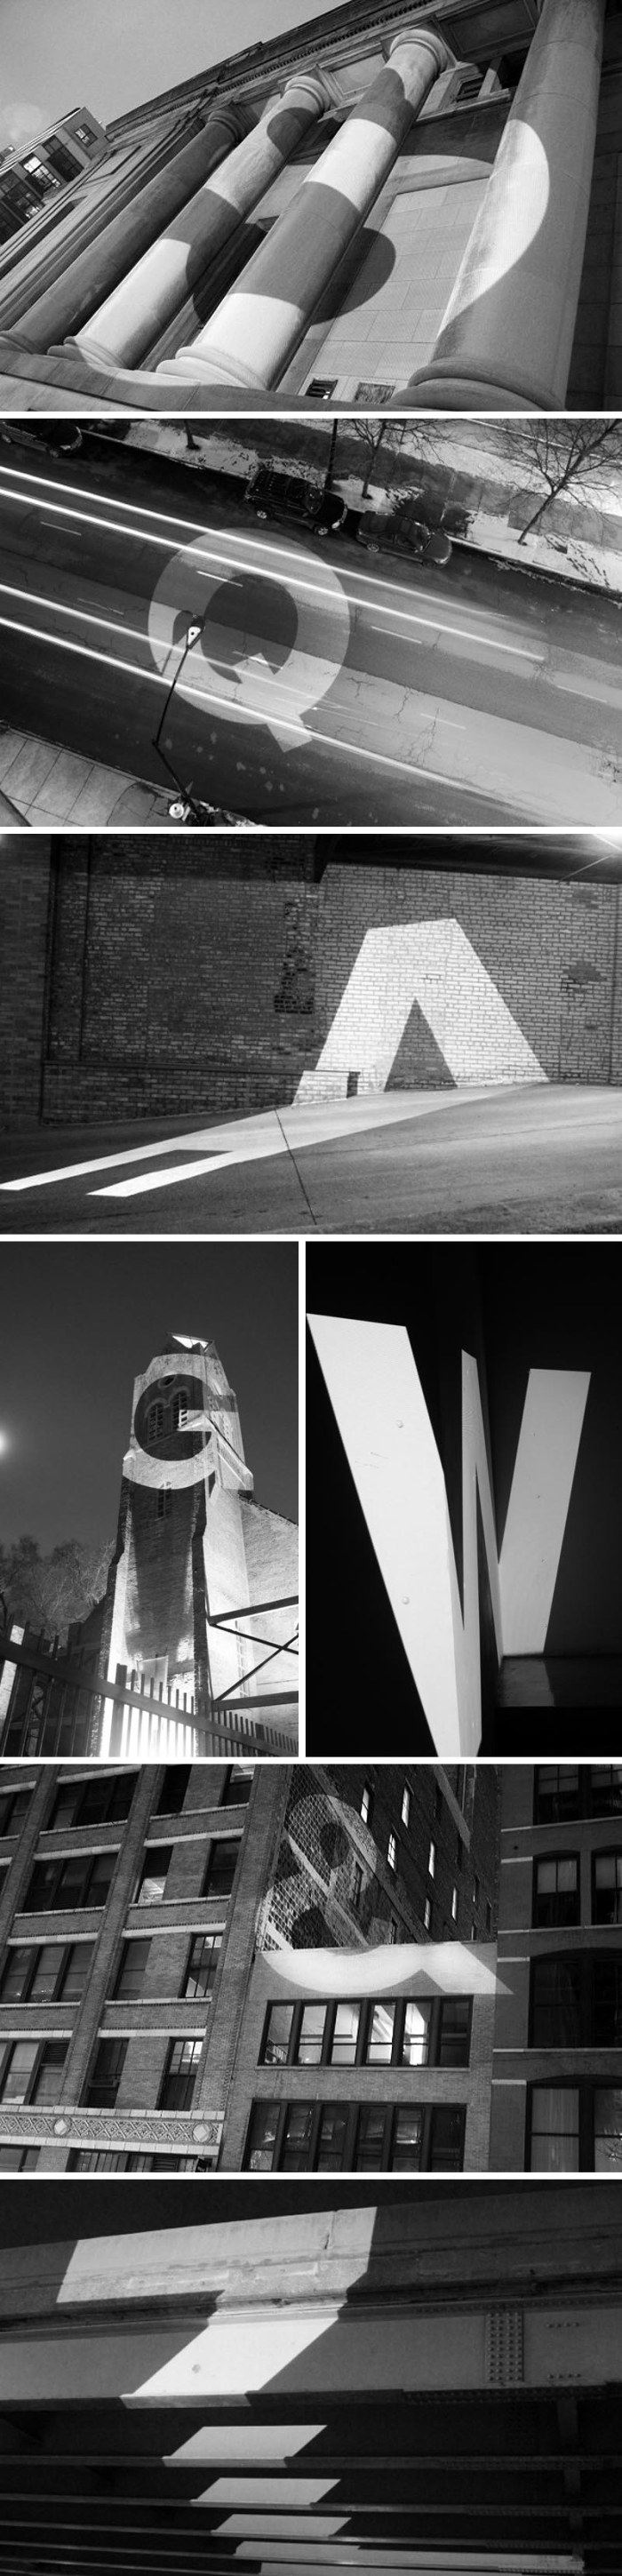 Letters at Large by Audra Hubbell, Large projections of letters with cool effects against architecture. Photographs. Typography